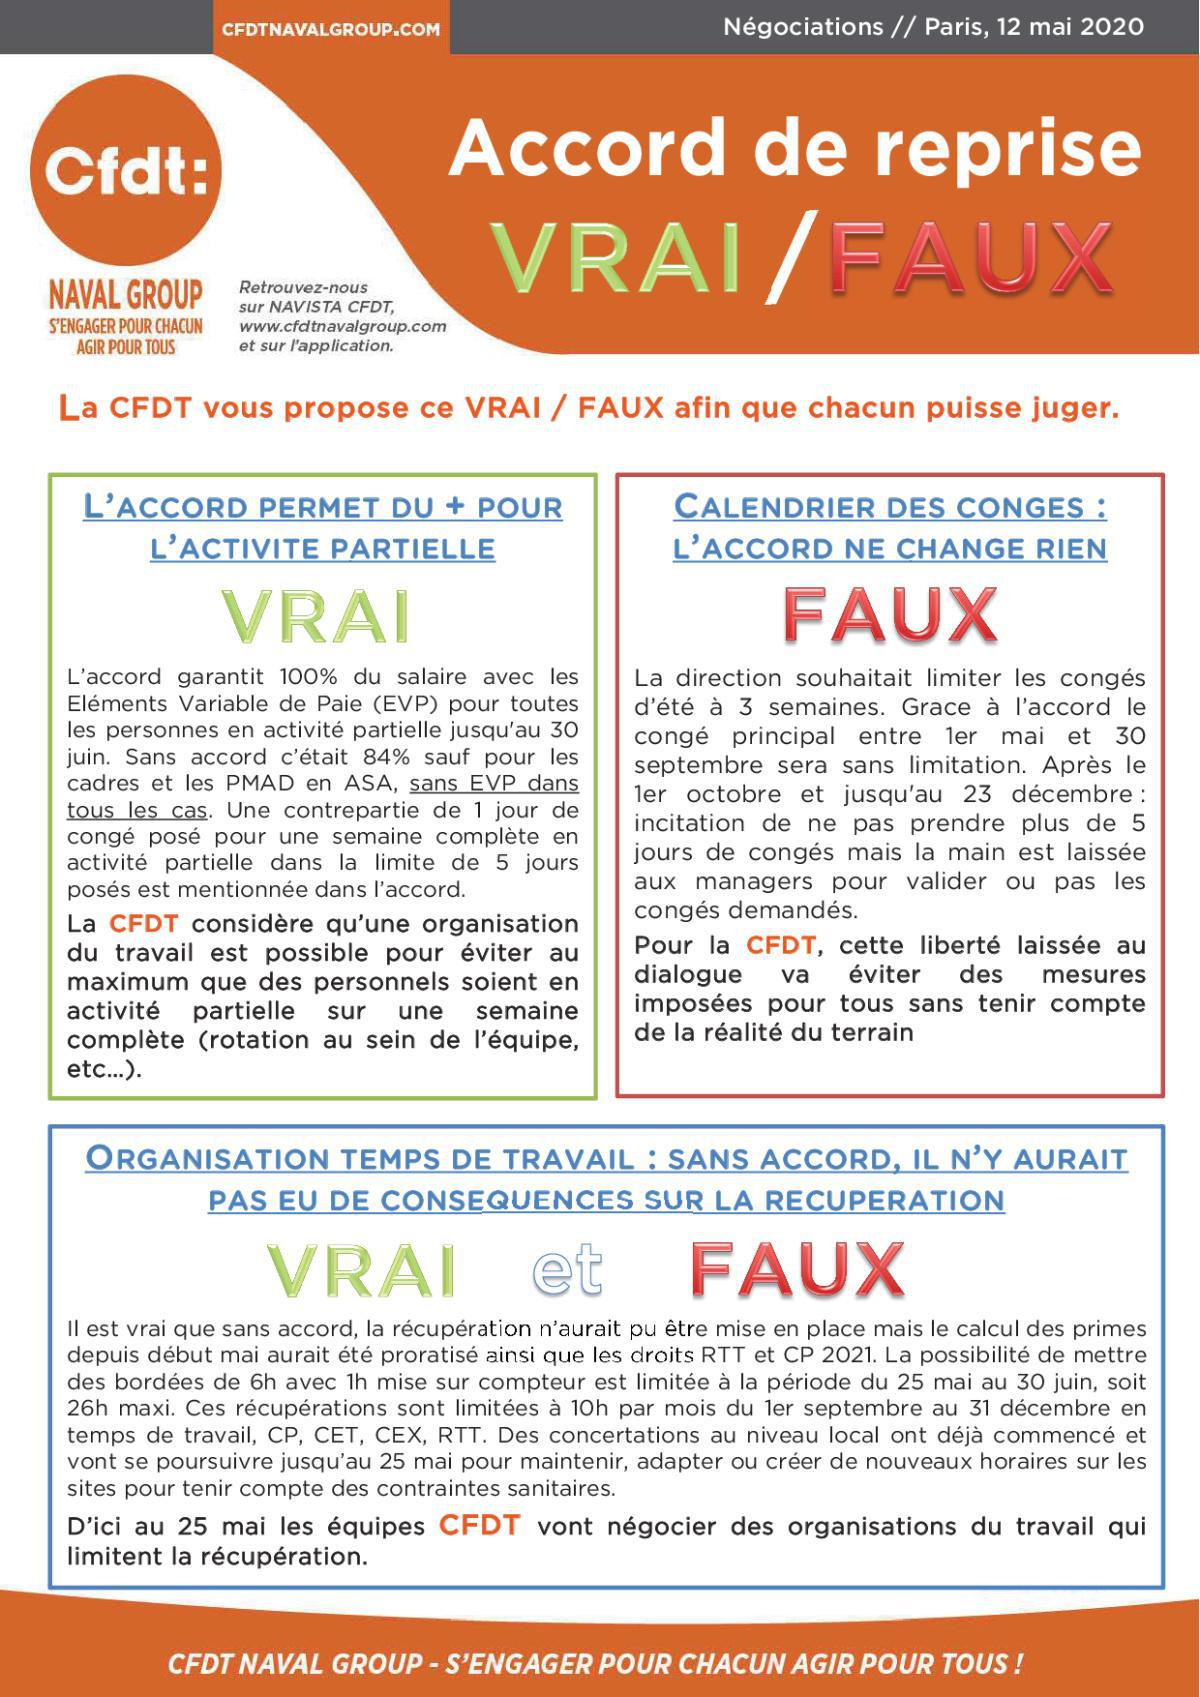 Accord de reprise VRAI / FAUX